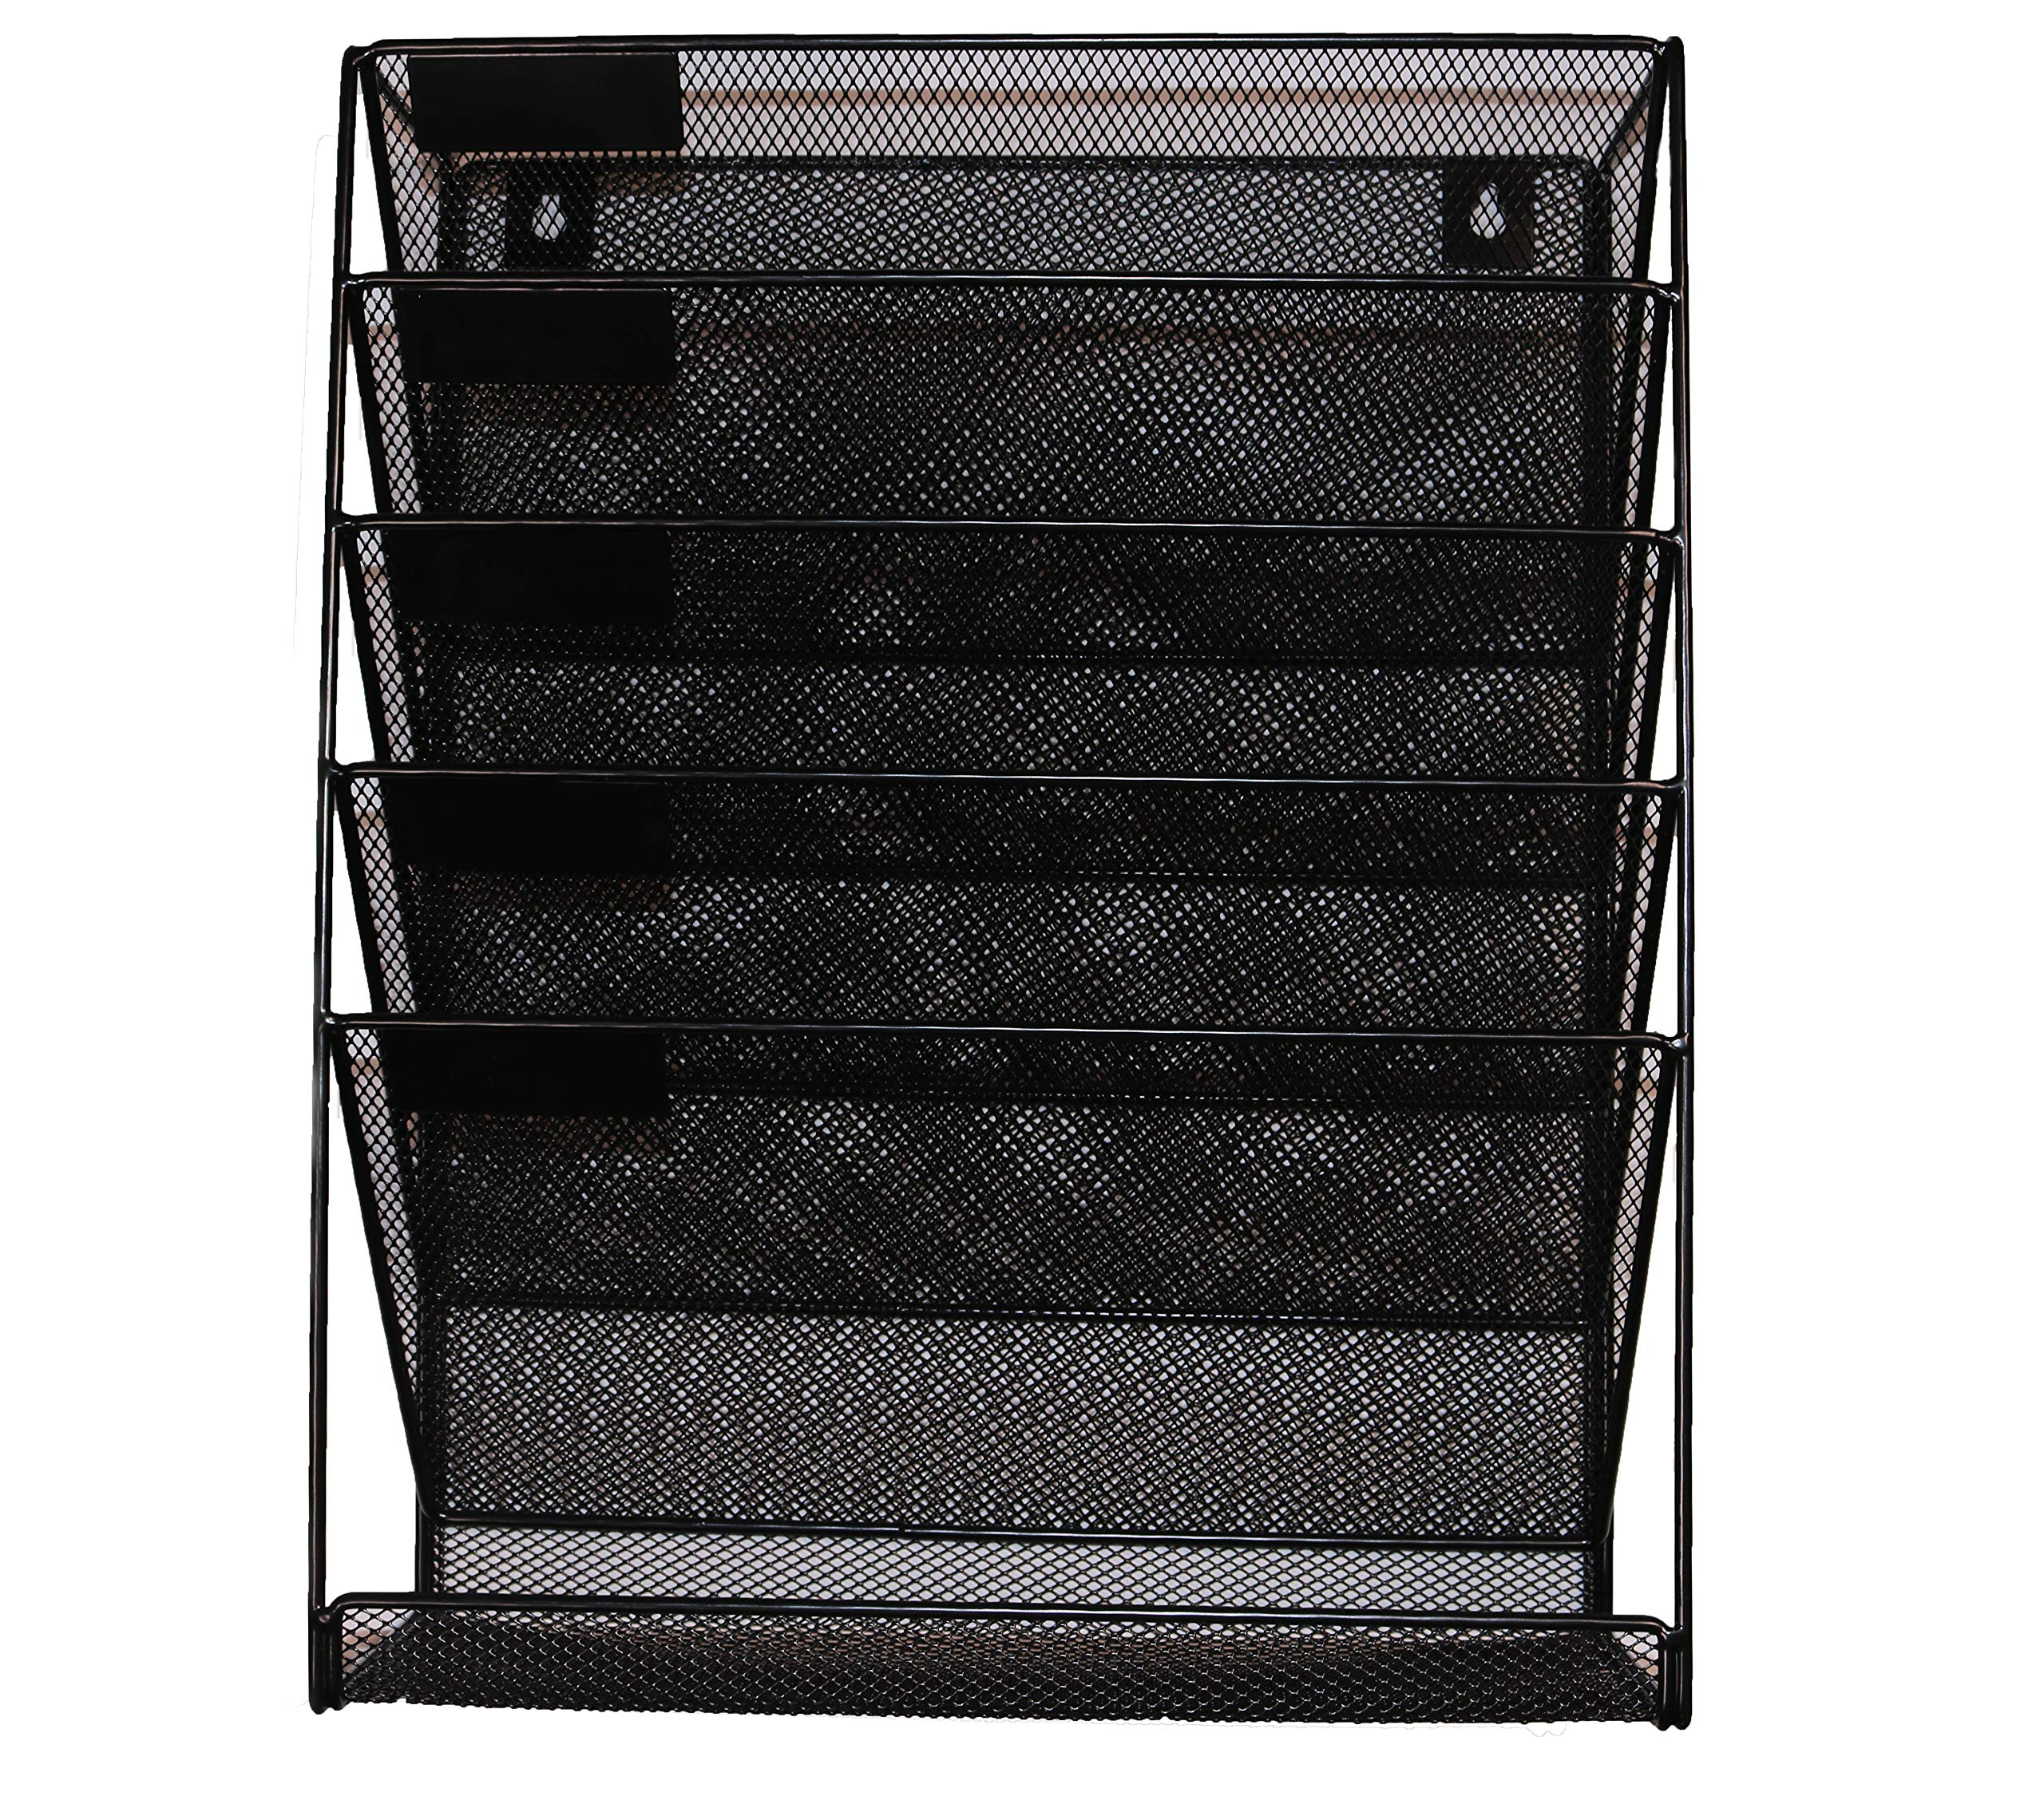 Hanging Wall File Organizer, Black Metal Mesh 5 Slot Wall Mounted Document Holder Rack for Office Home